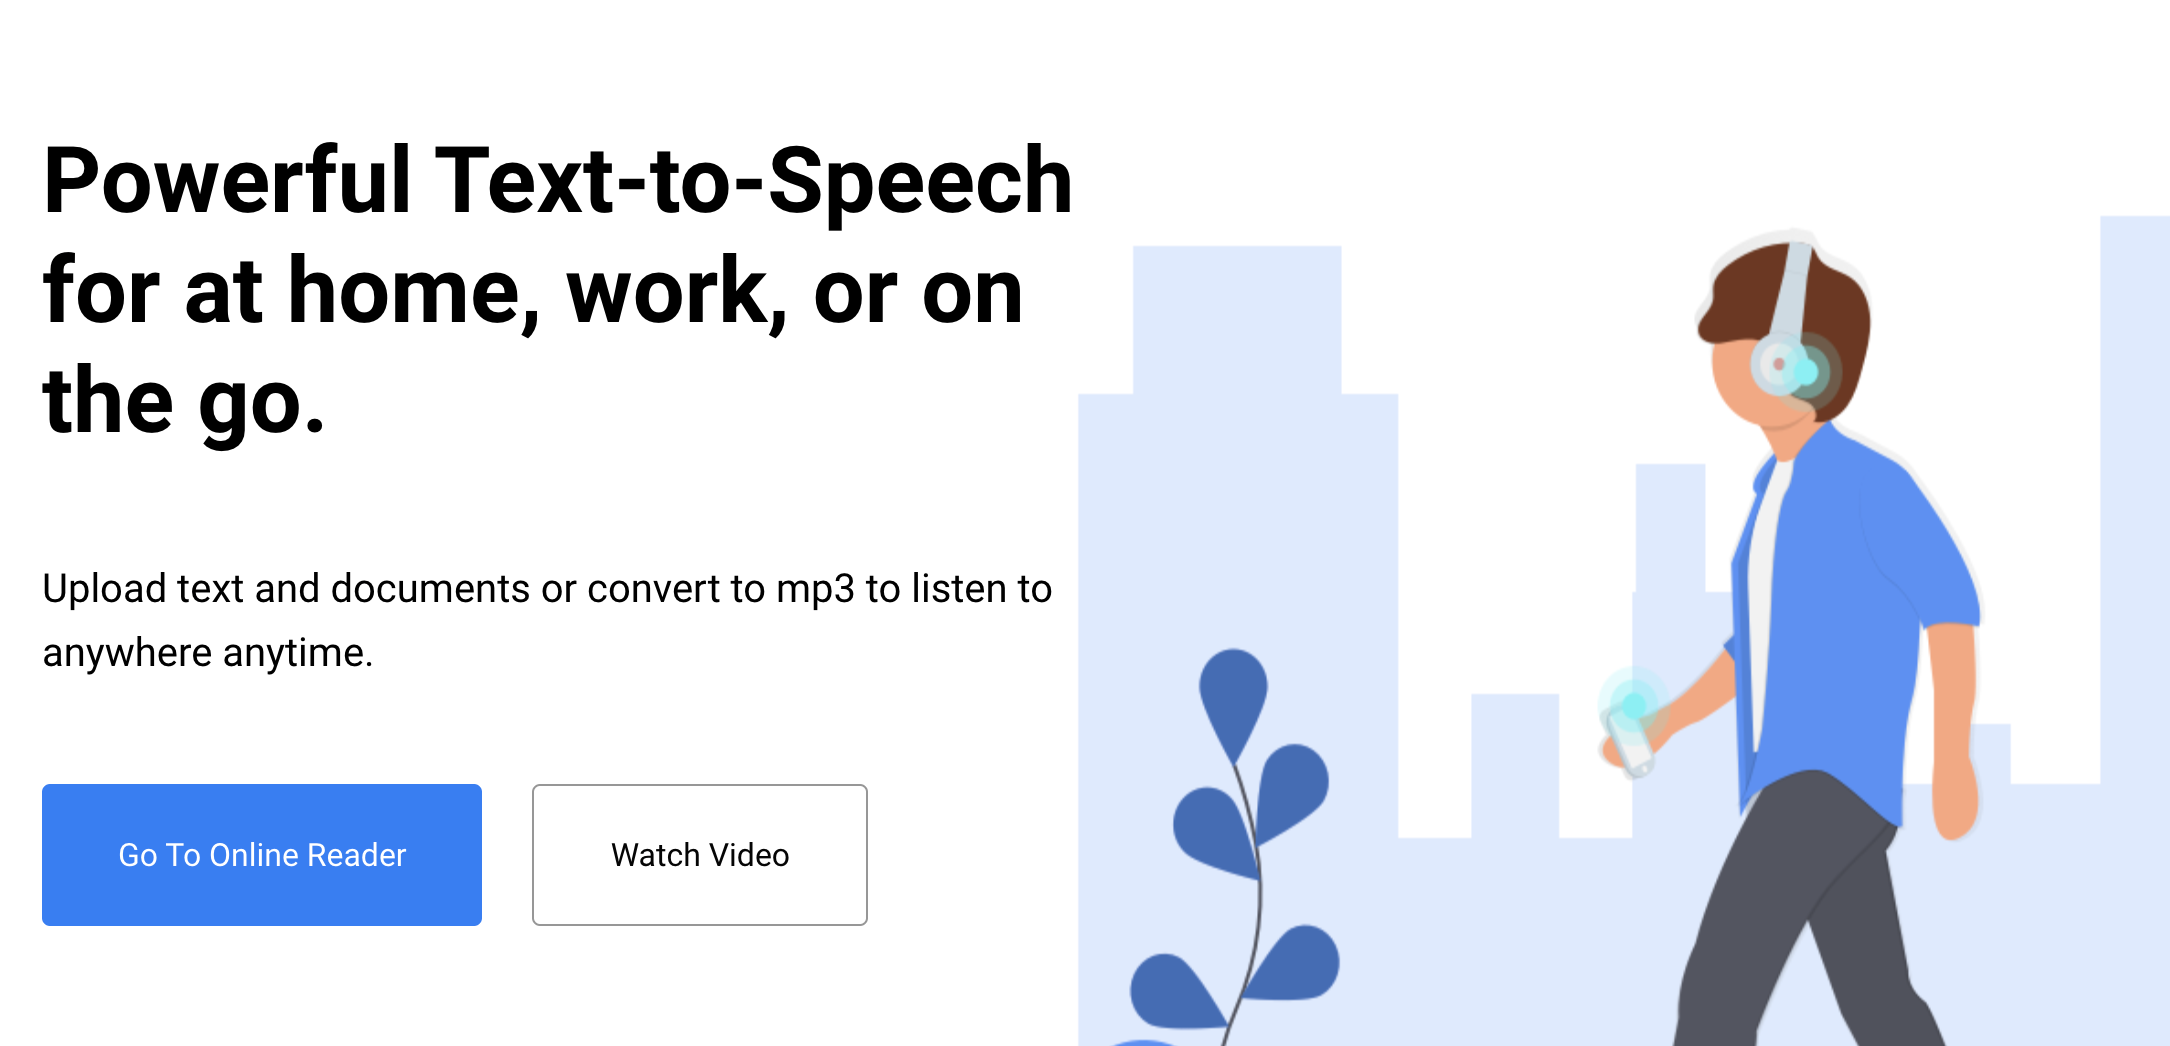 homepage advertising powerful text-to-speech with buttons to watch a video or go to the reader